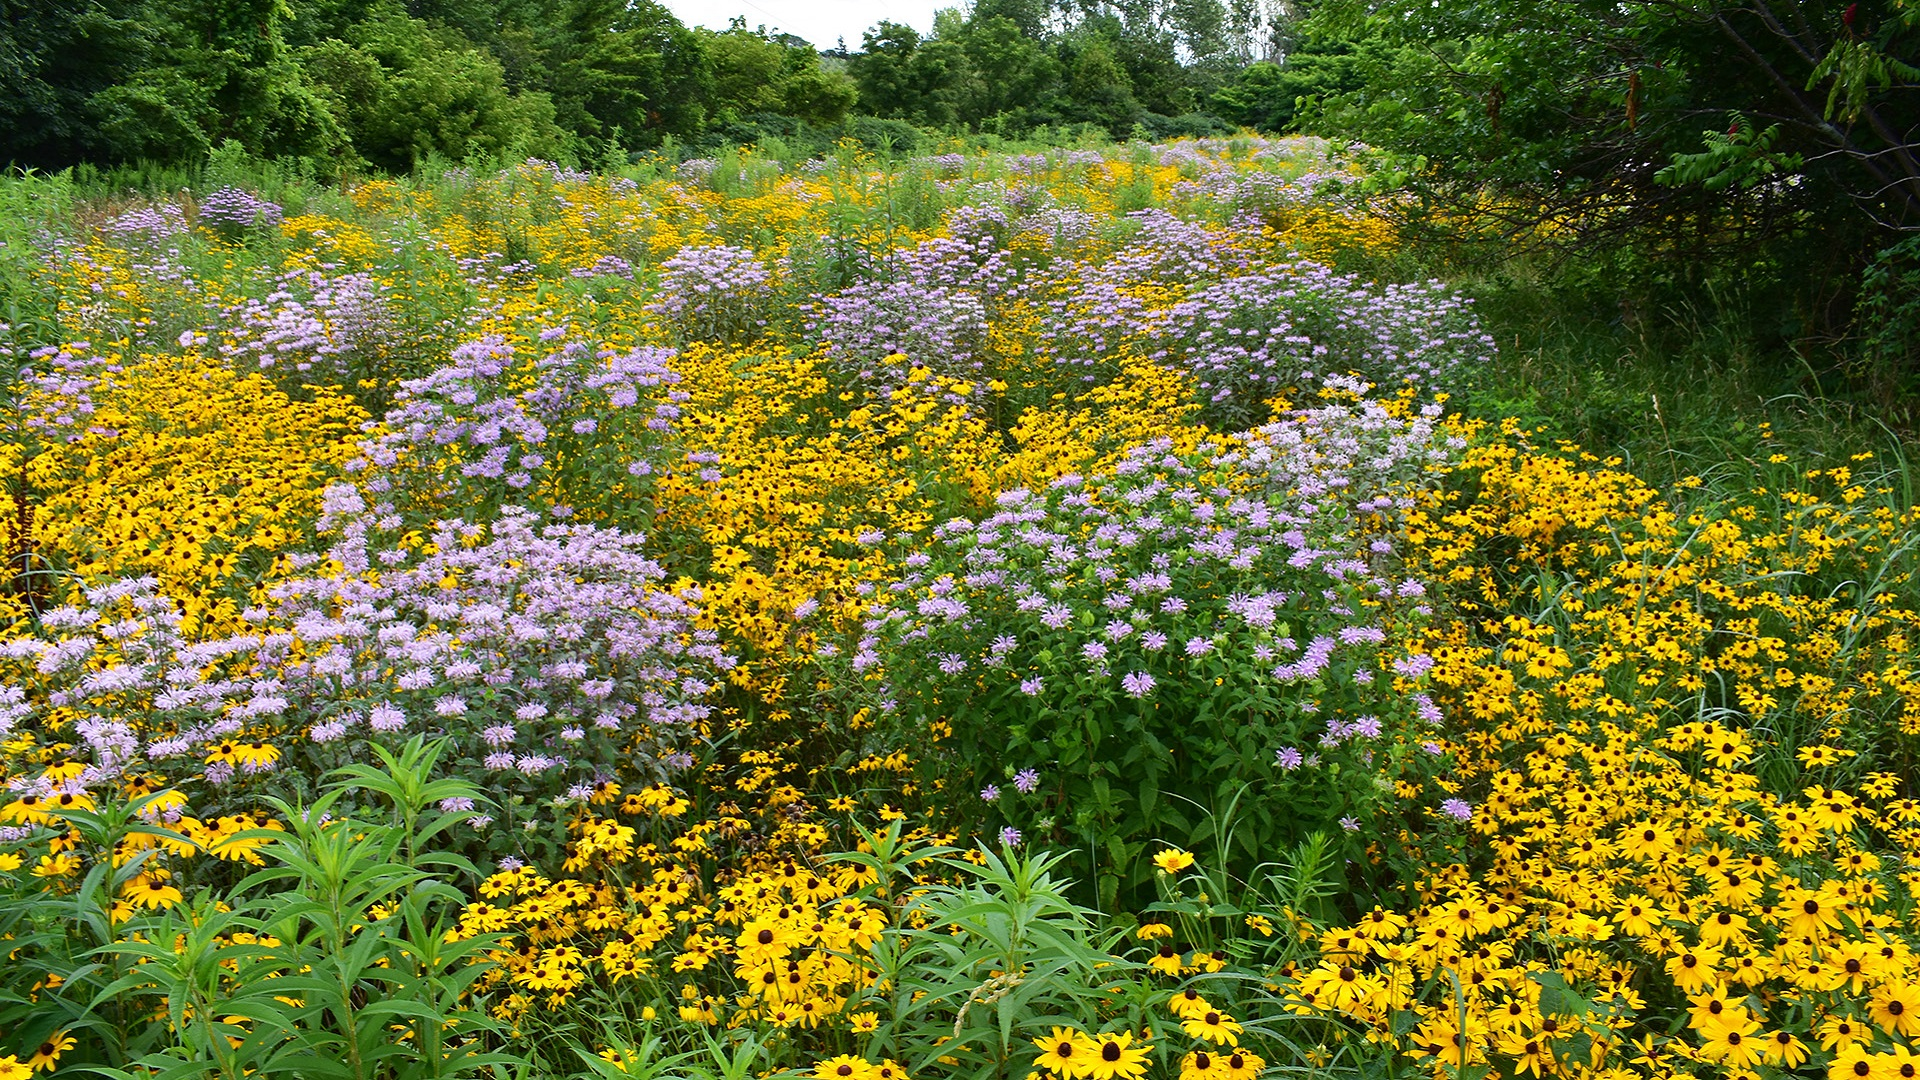 section of The Meadoway with native flowers in bloom